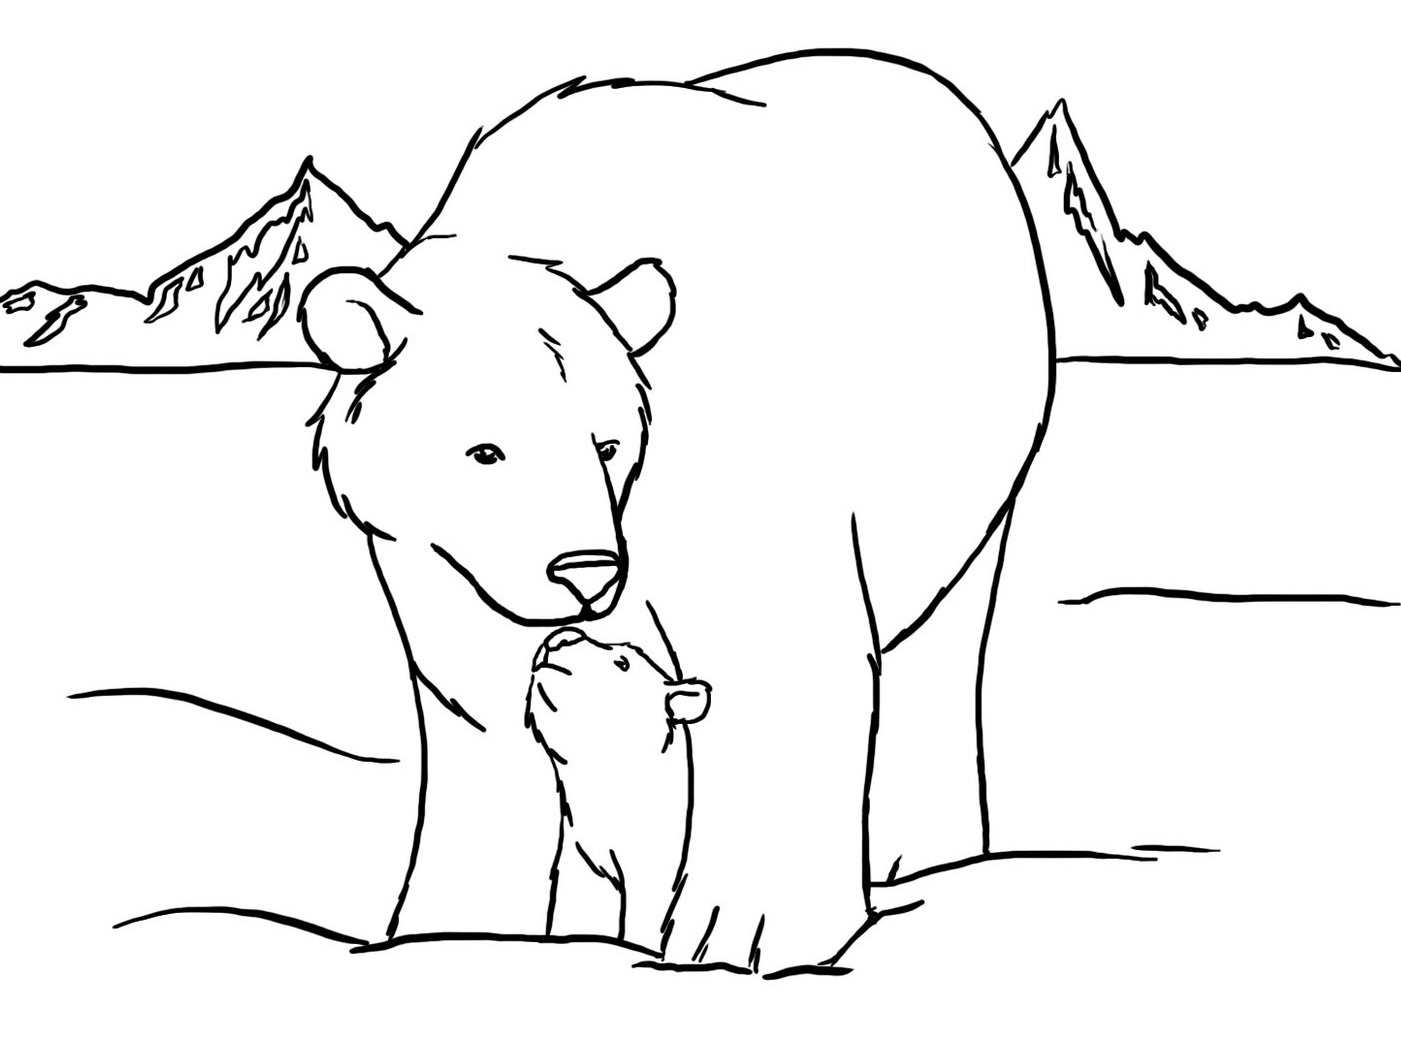 polar bear coloring pages polar bear coloring pages to download and print for free coloring polar bear pages